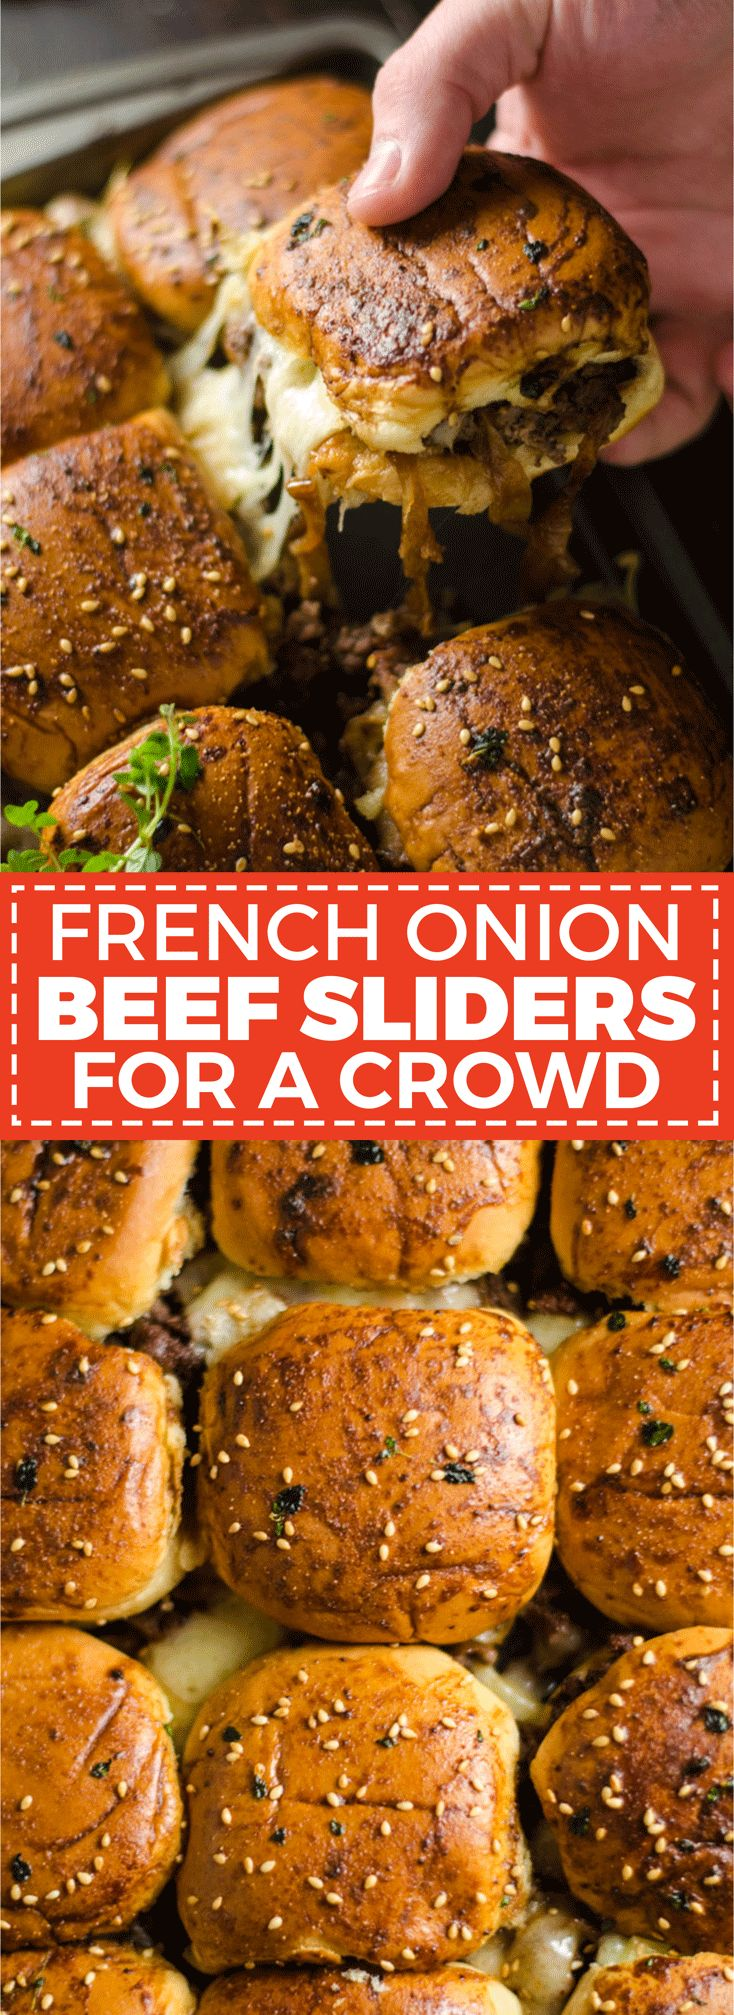 French Onion Beef Sliders For A Crowd - This is one appetizer recipe you don't want to skip. Serve it for the Super Bowl and watch how quickly these little sandwiches disappear.=